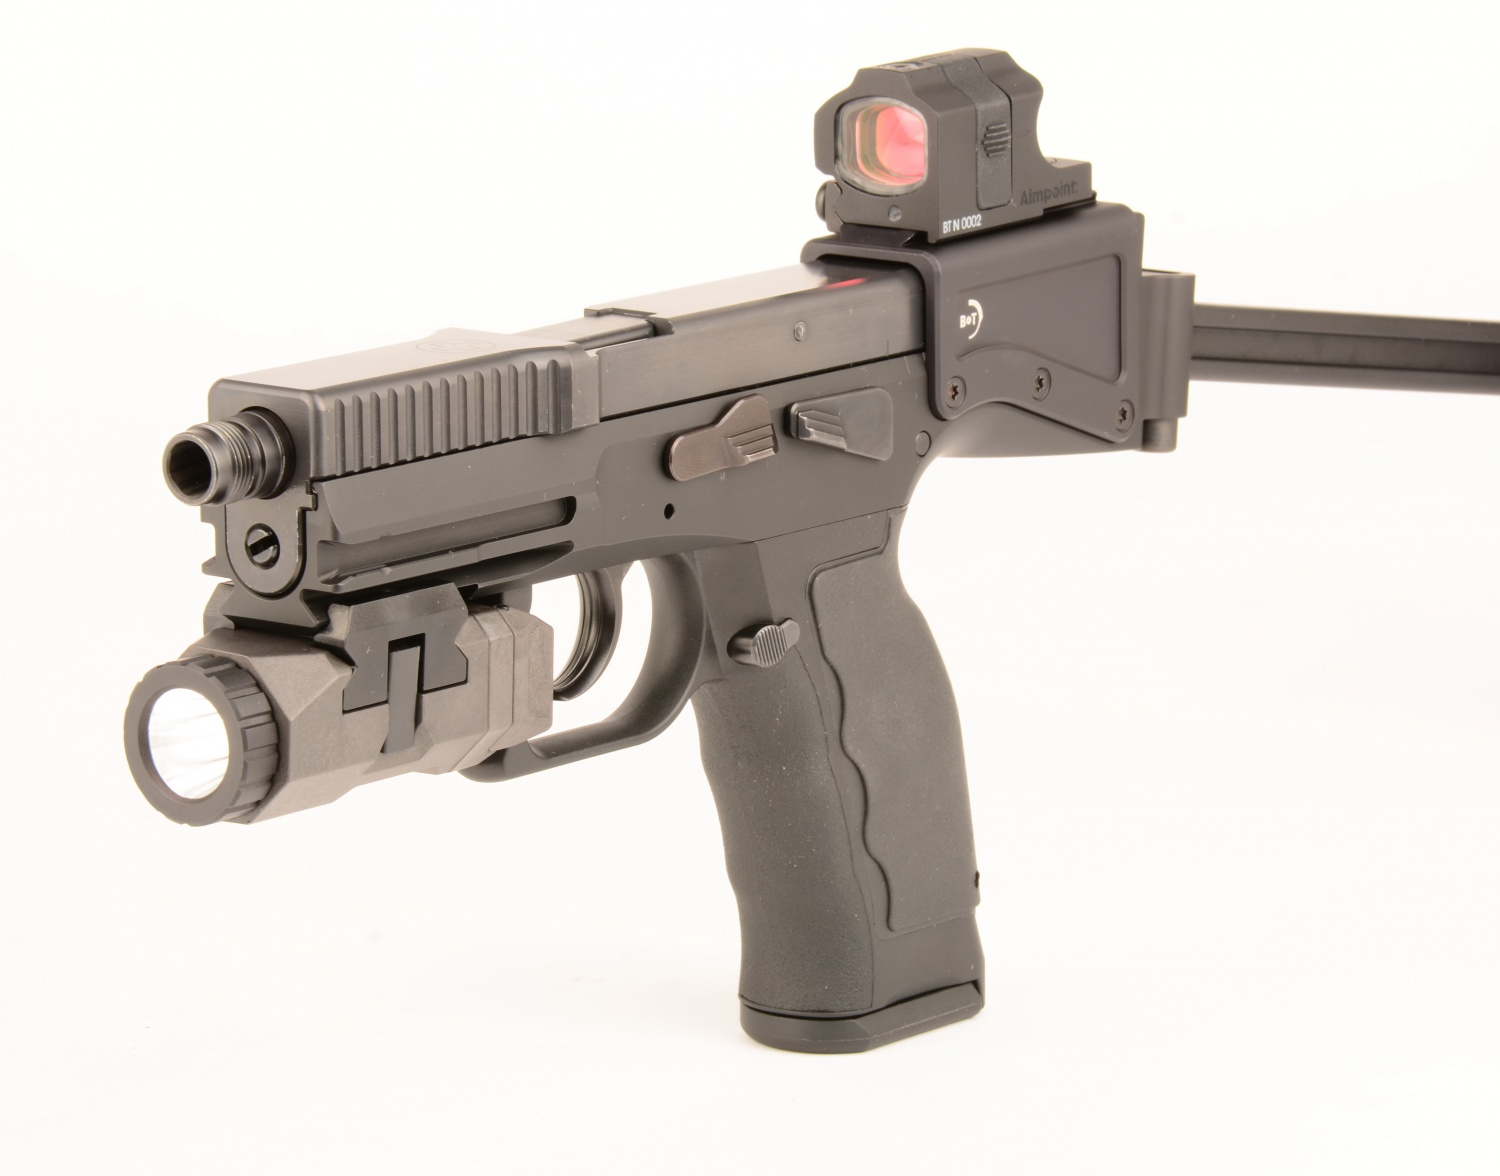 The B Amp T Usw Universal Service Weapon And Aimpoint Nano